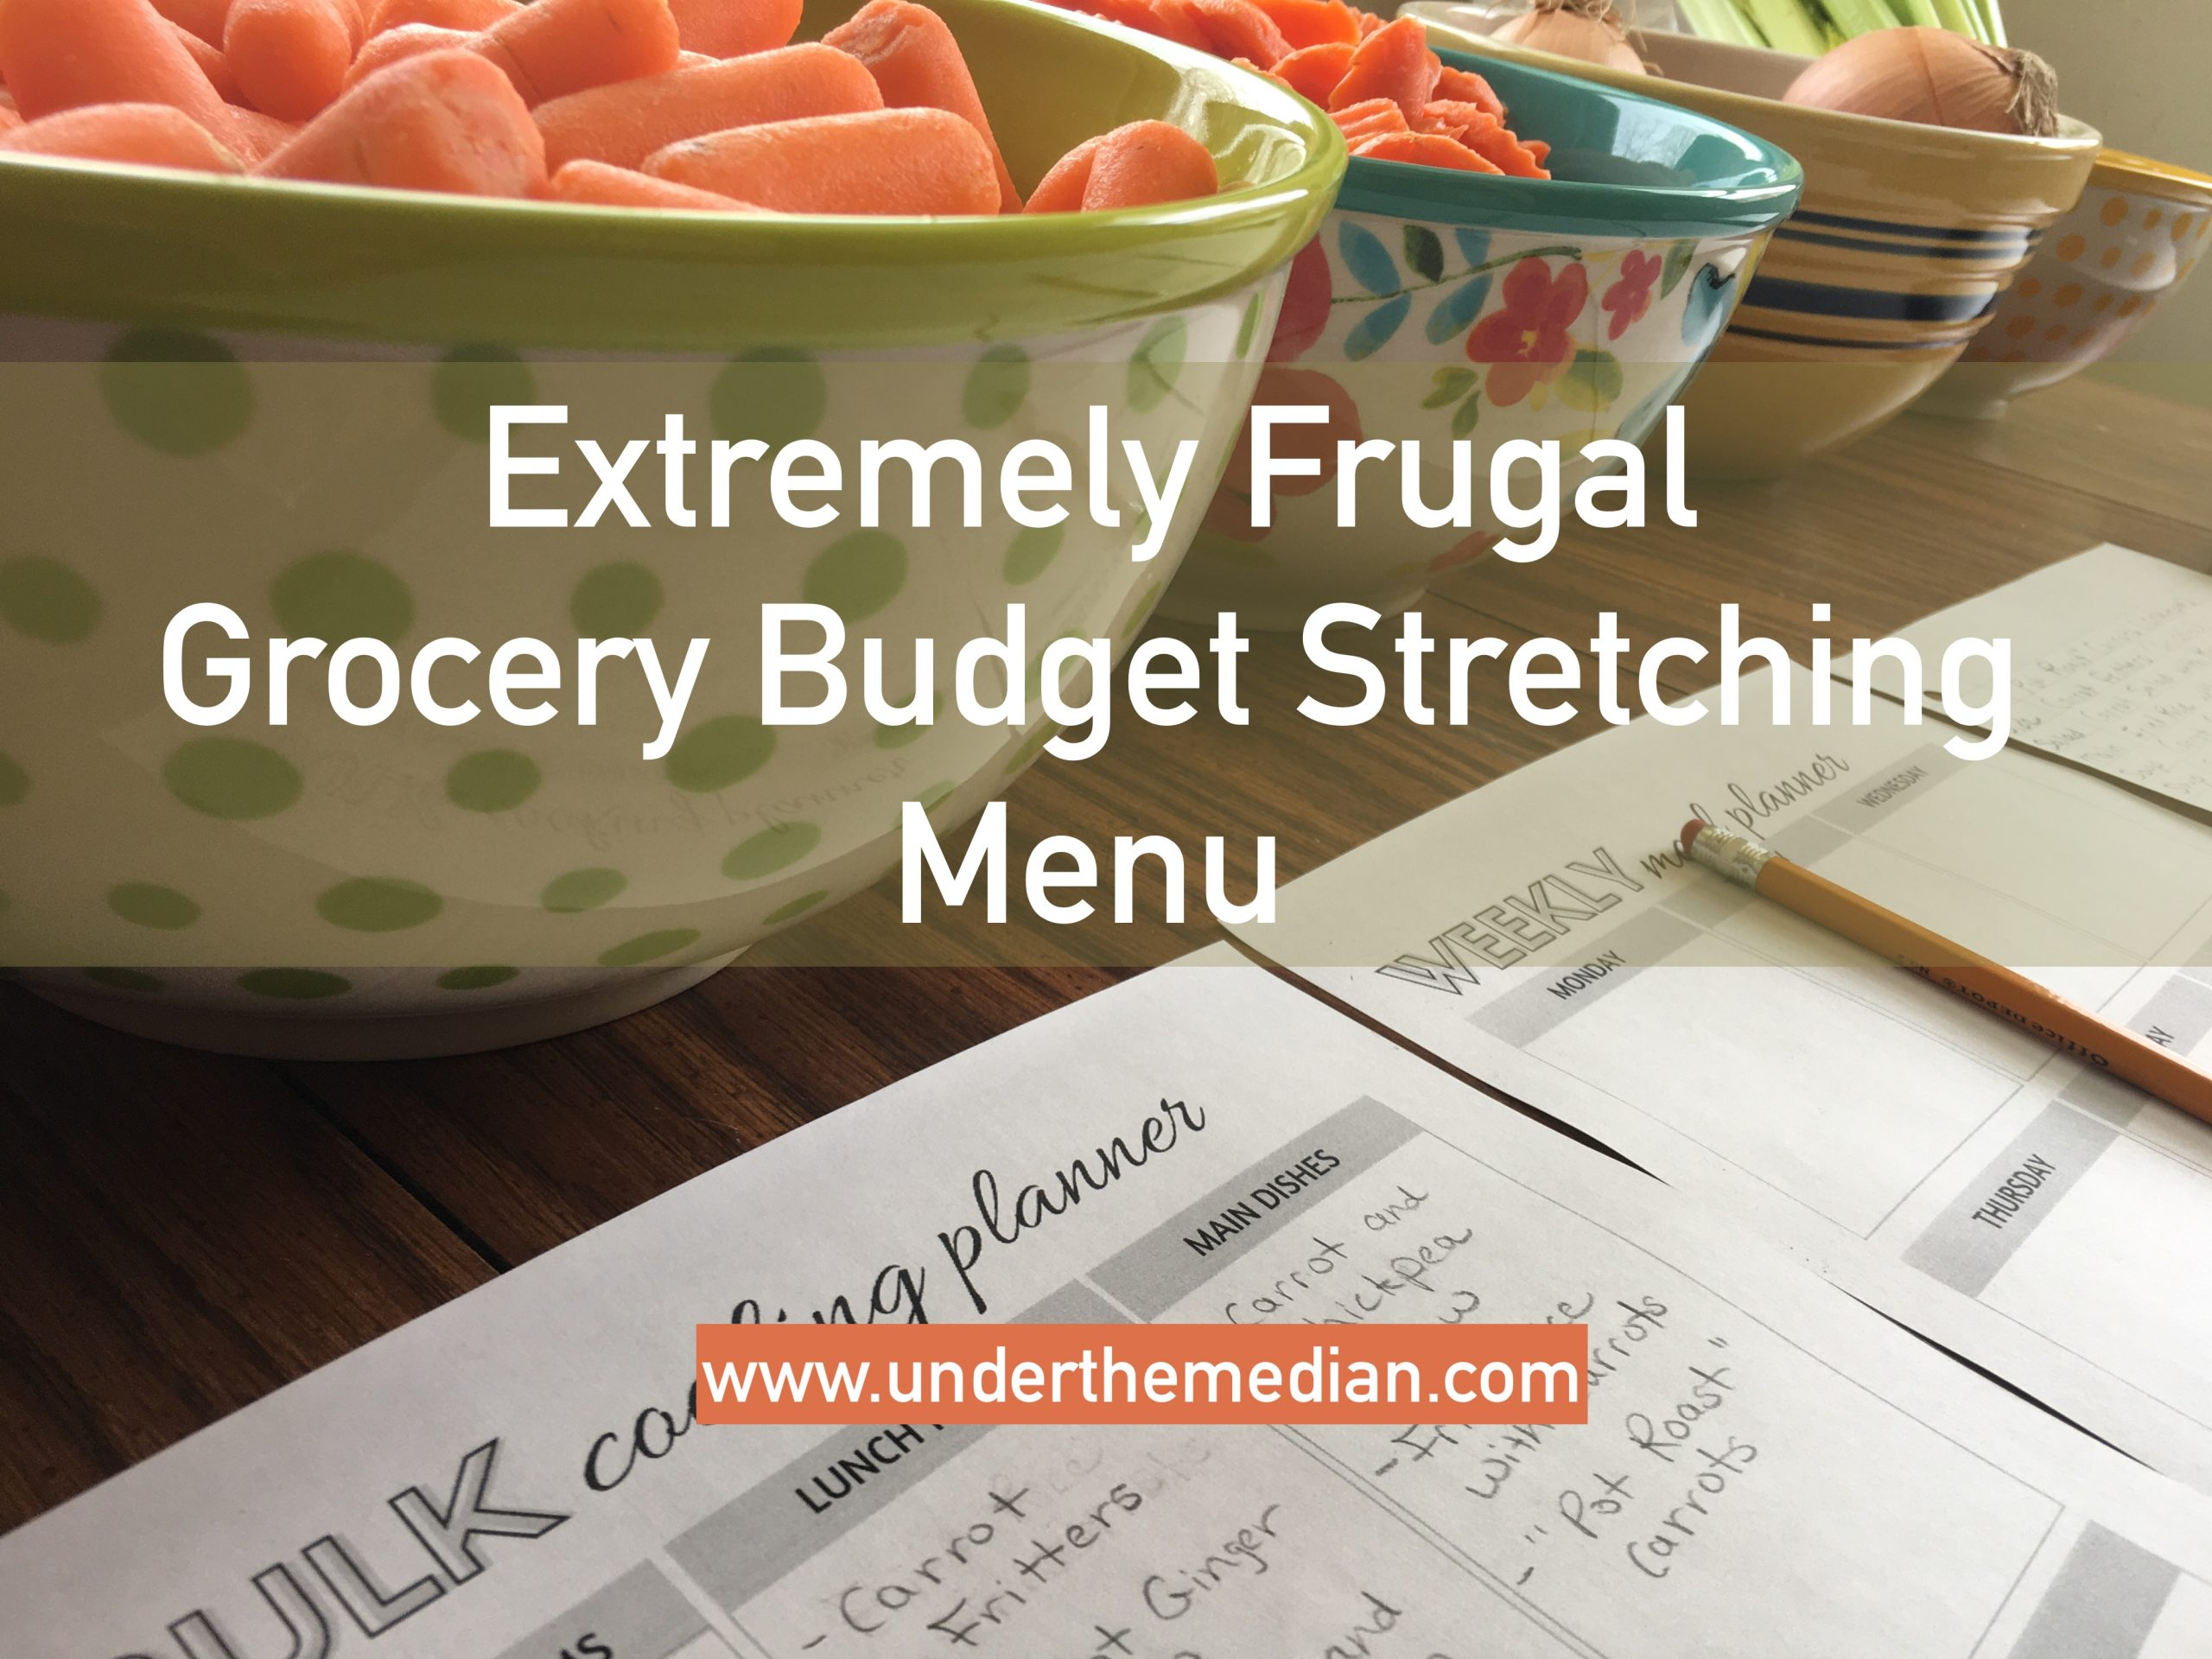 Extremely Frugal Grocery Budget Stretching Menu